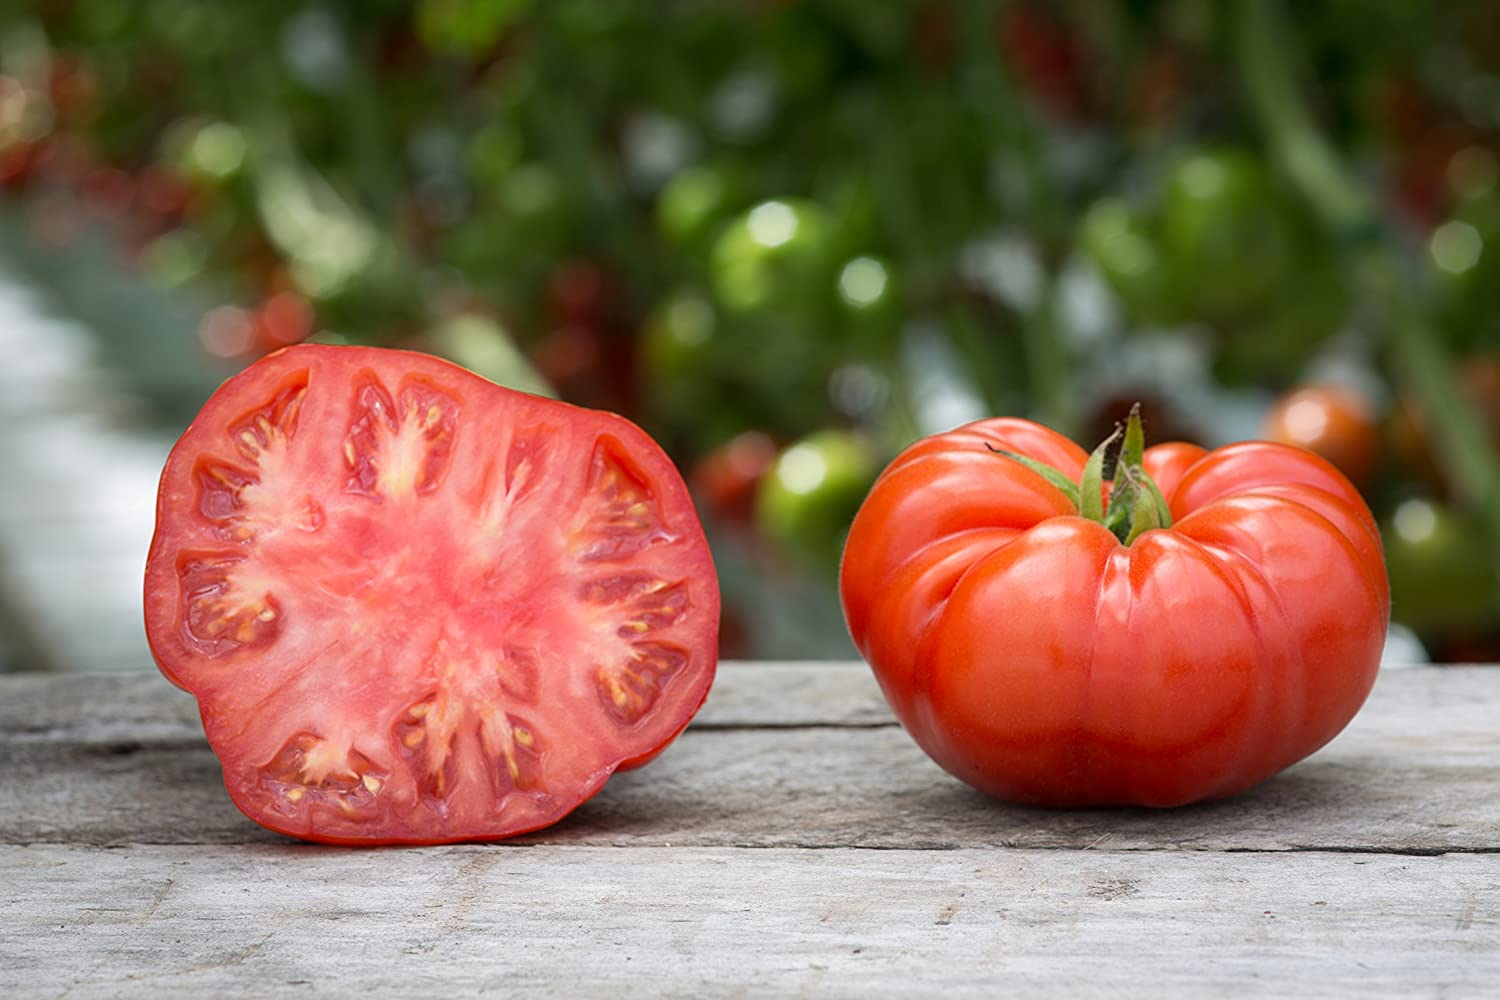 300+ Seeds of Red Beefsteak Tomato Seeds, Non-GMO, Indeterminate Tomato, Open Pollinated, Beef Solanum lycopersicum, Large Fruit, Great Flavor